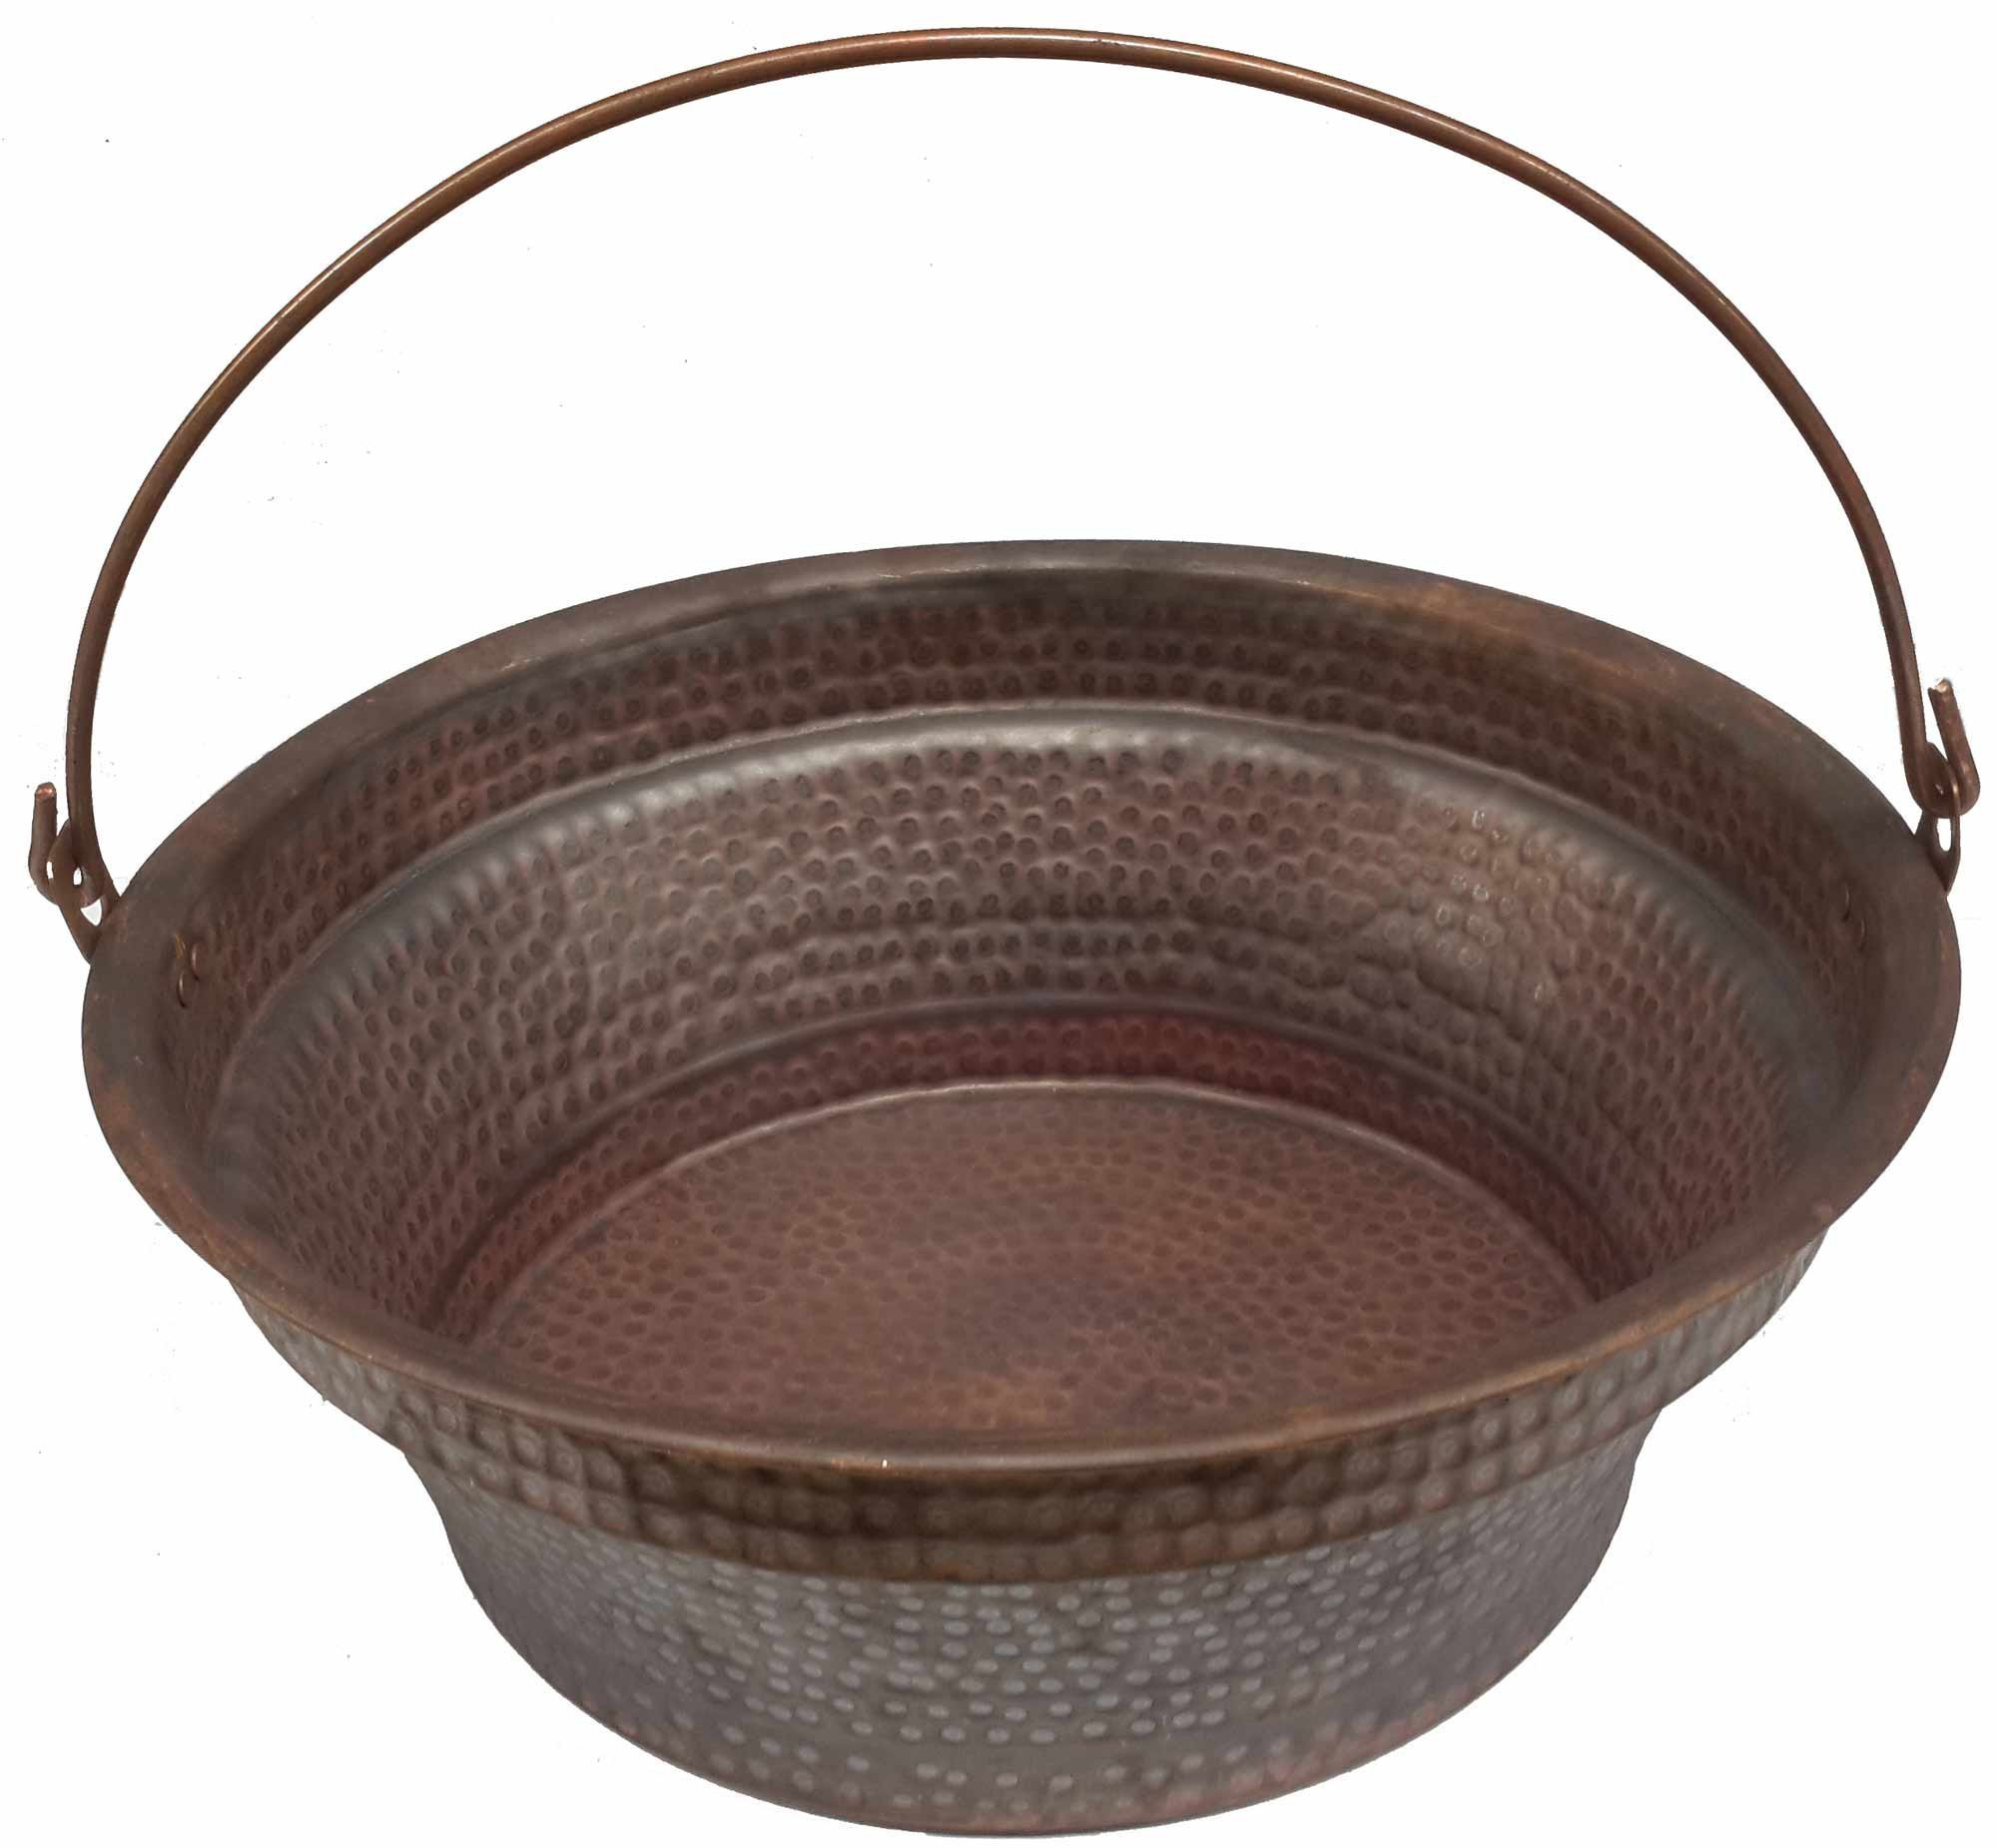 Egypt gift shops Copper Bucket Basin Skin Disorder Remedy Massage Relaxing Soothing Therapy Pedicure Spa Bride Beauty Salon Yoga Foot Rub